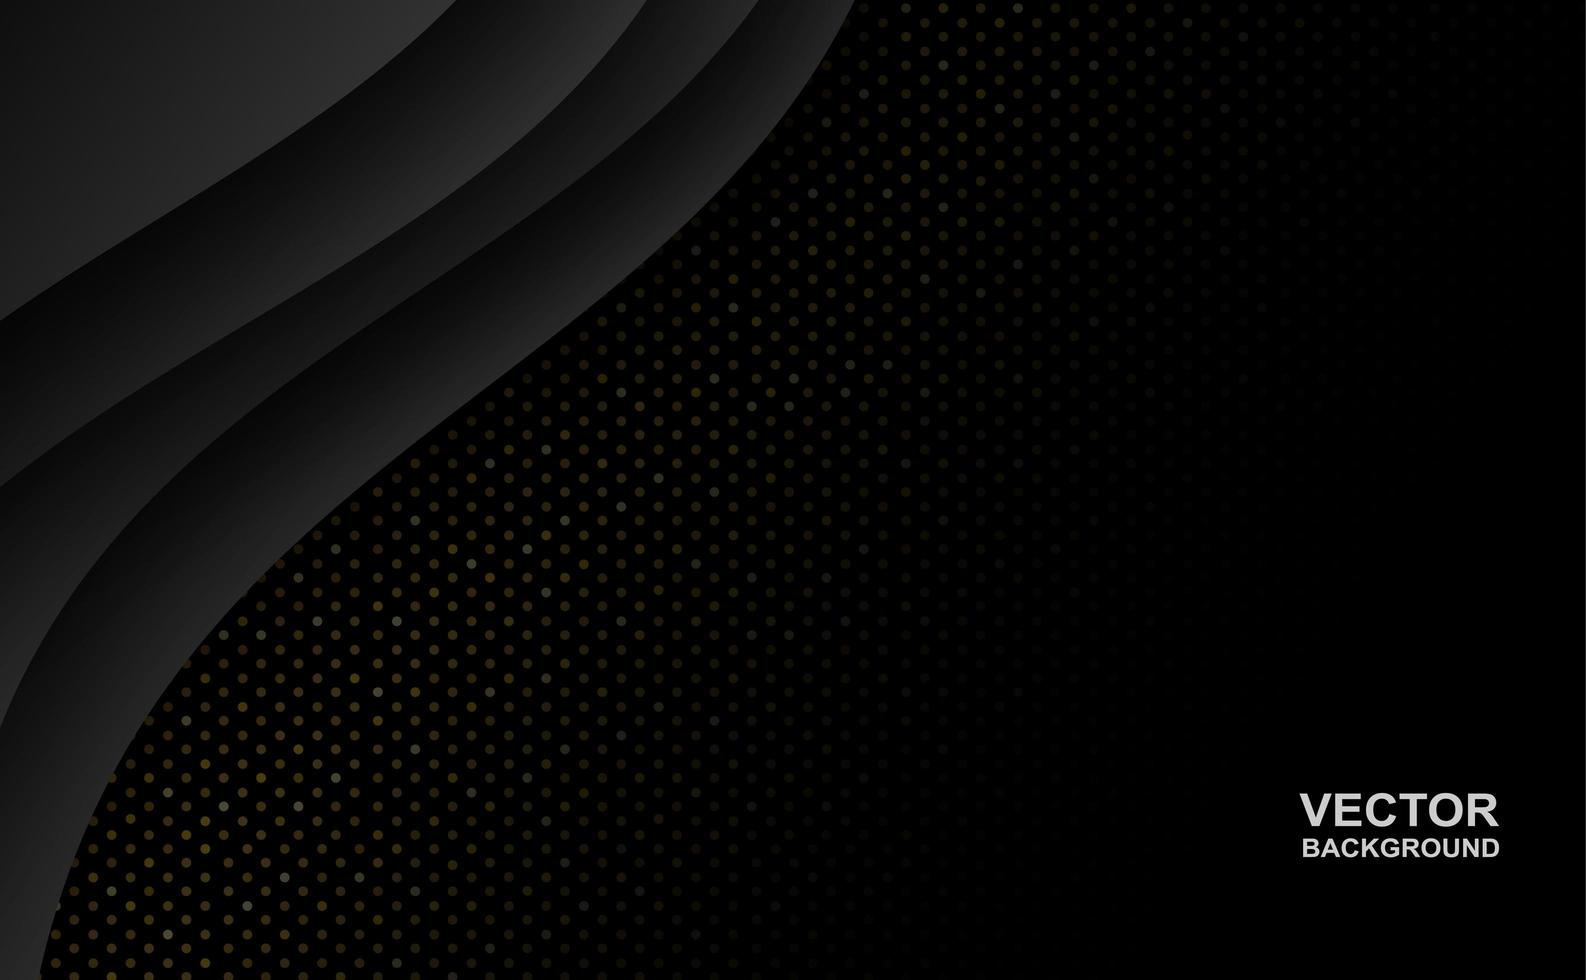 Abstract Black Overlapping Curve Shape Background  vector